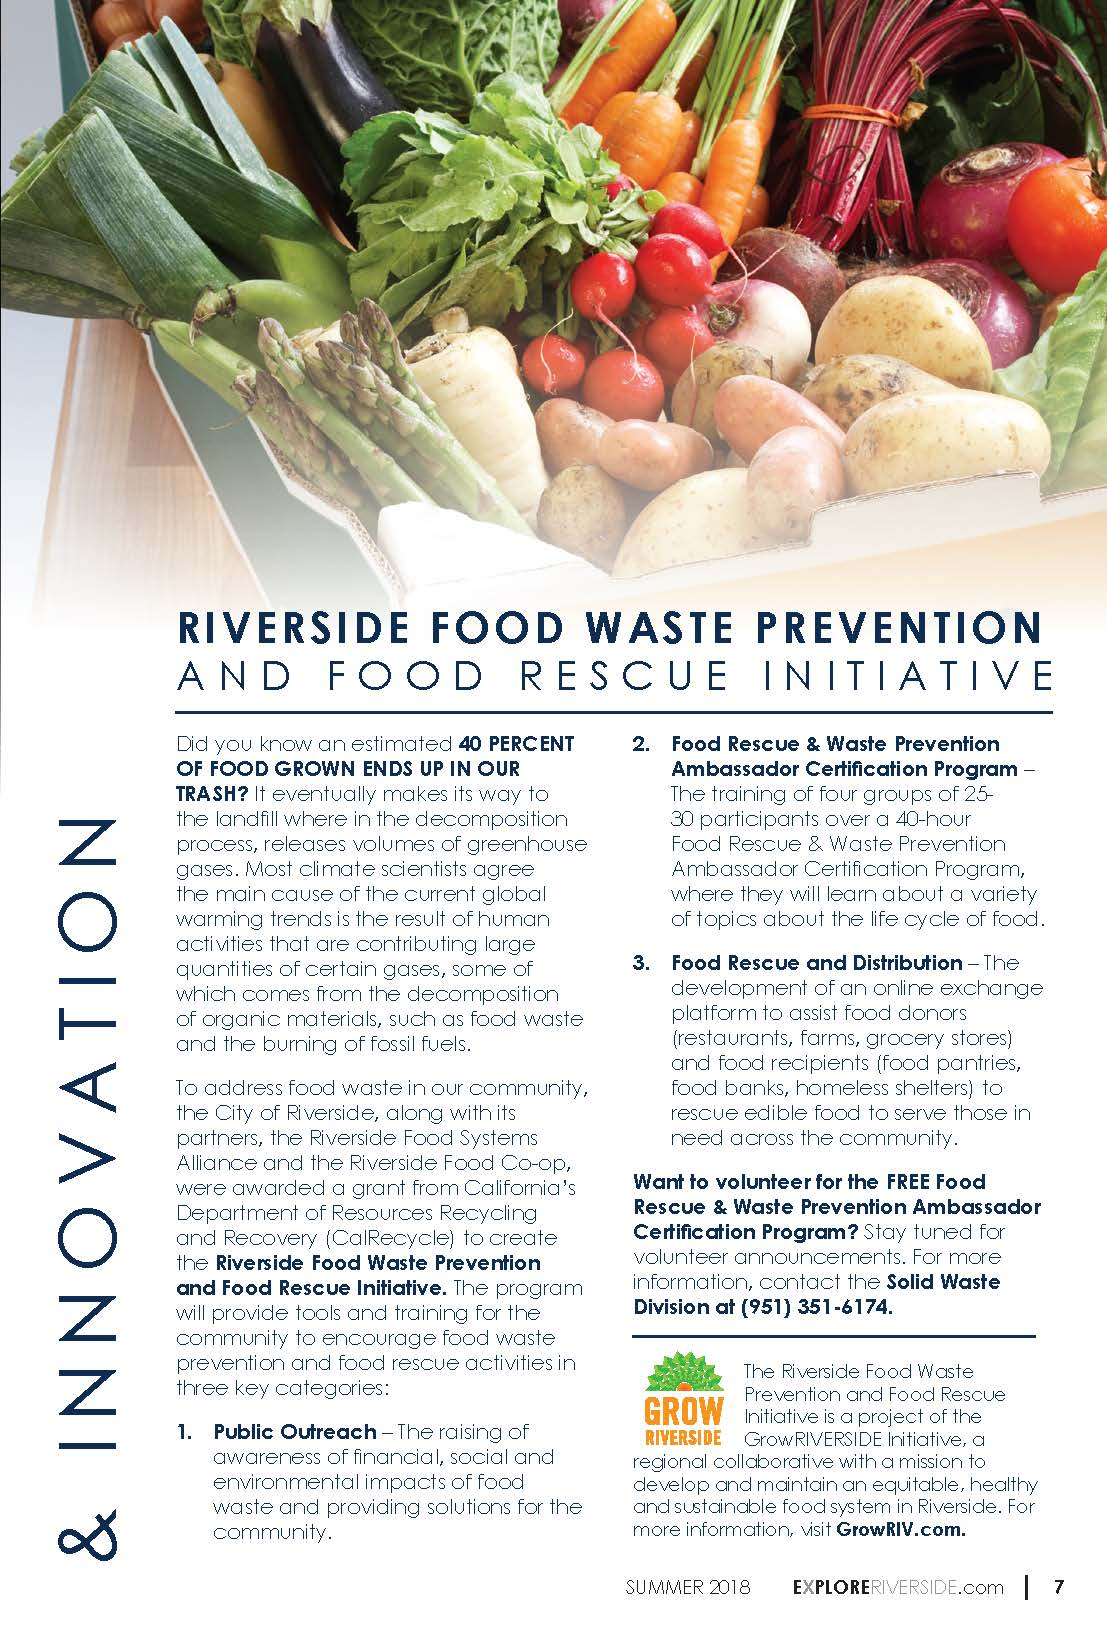 Food Waste Article from Explore Riverside Magazine